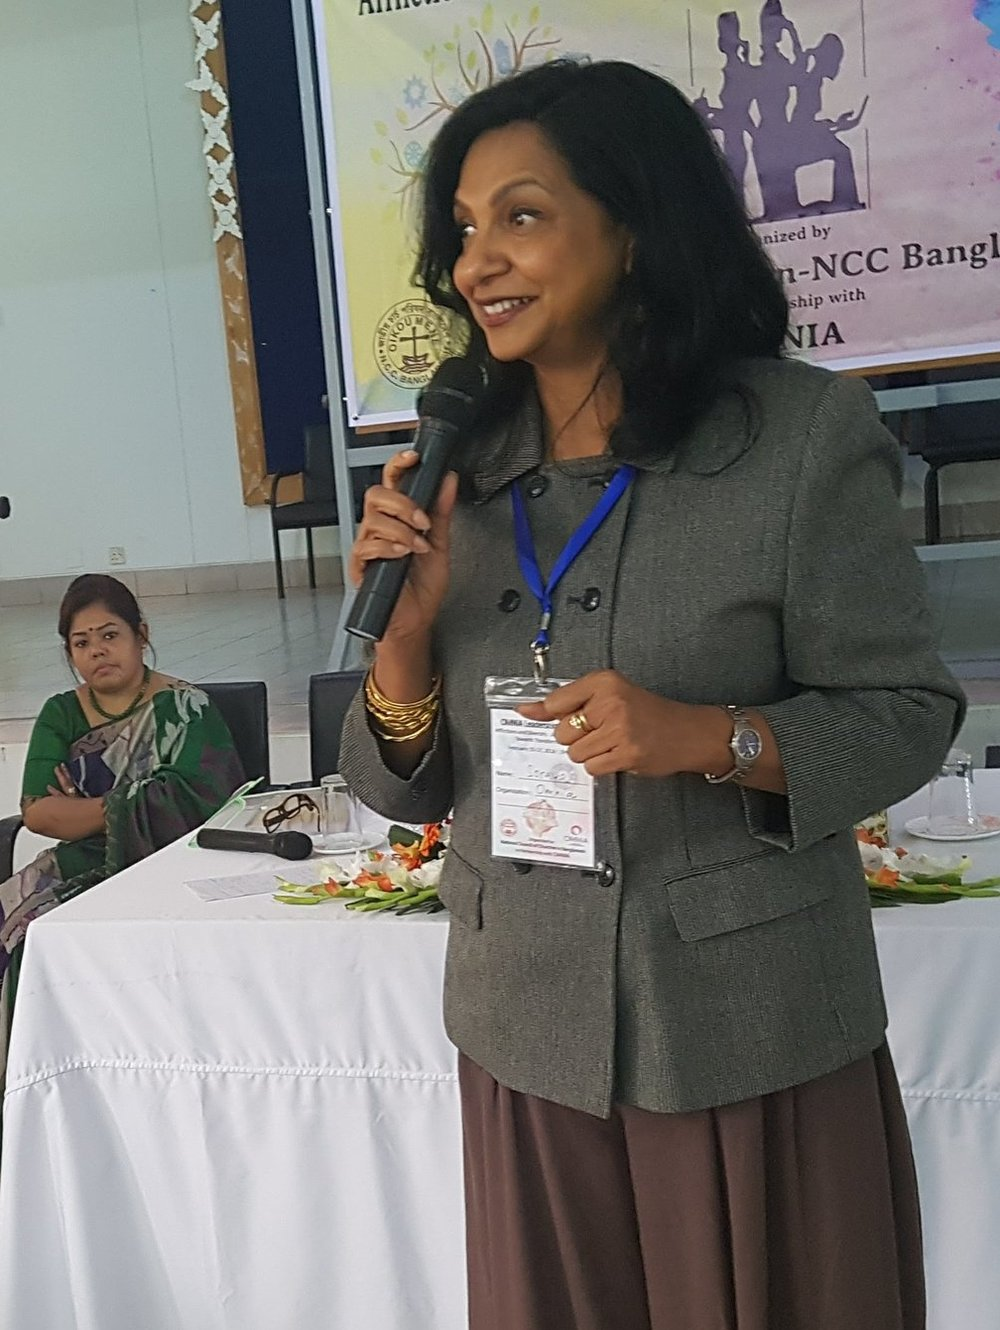 OMNIA Leader Soraya Deen addressing issues of patriarchy in Bangladesh